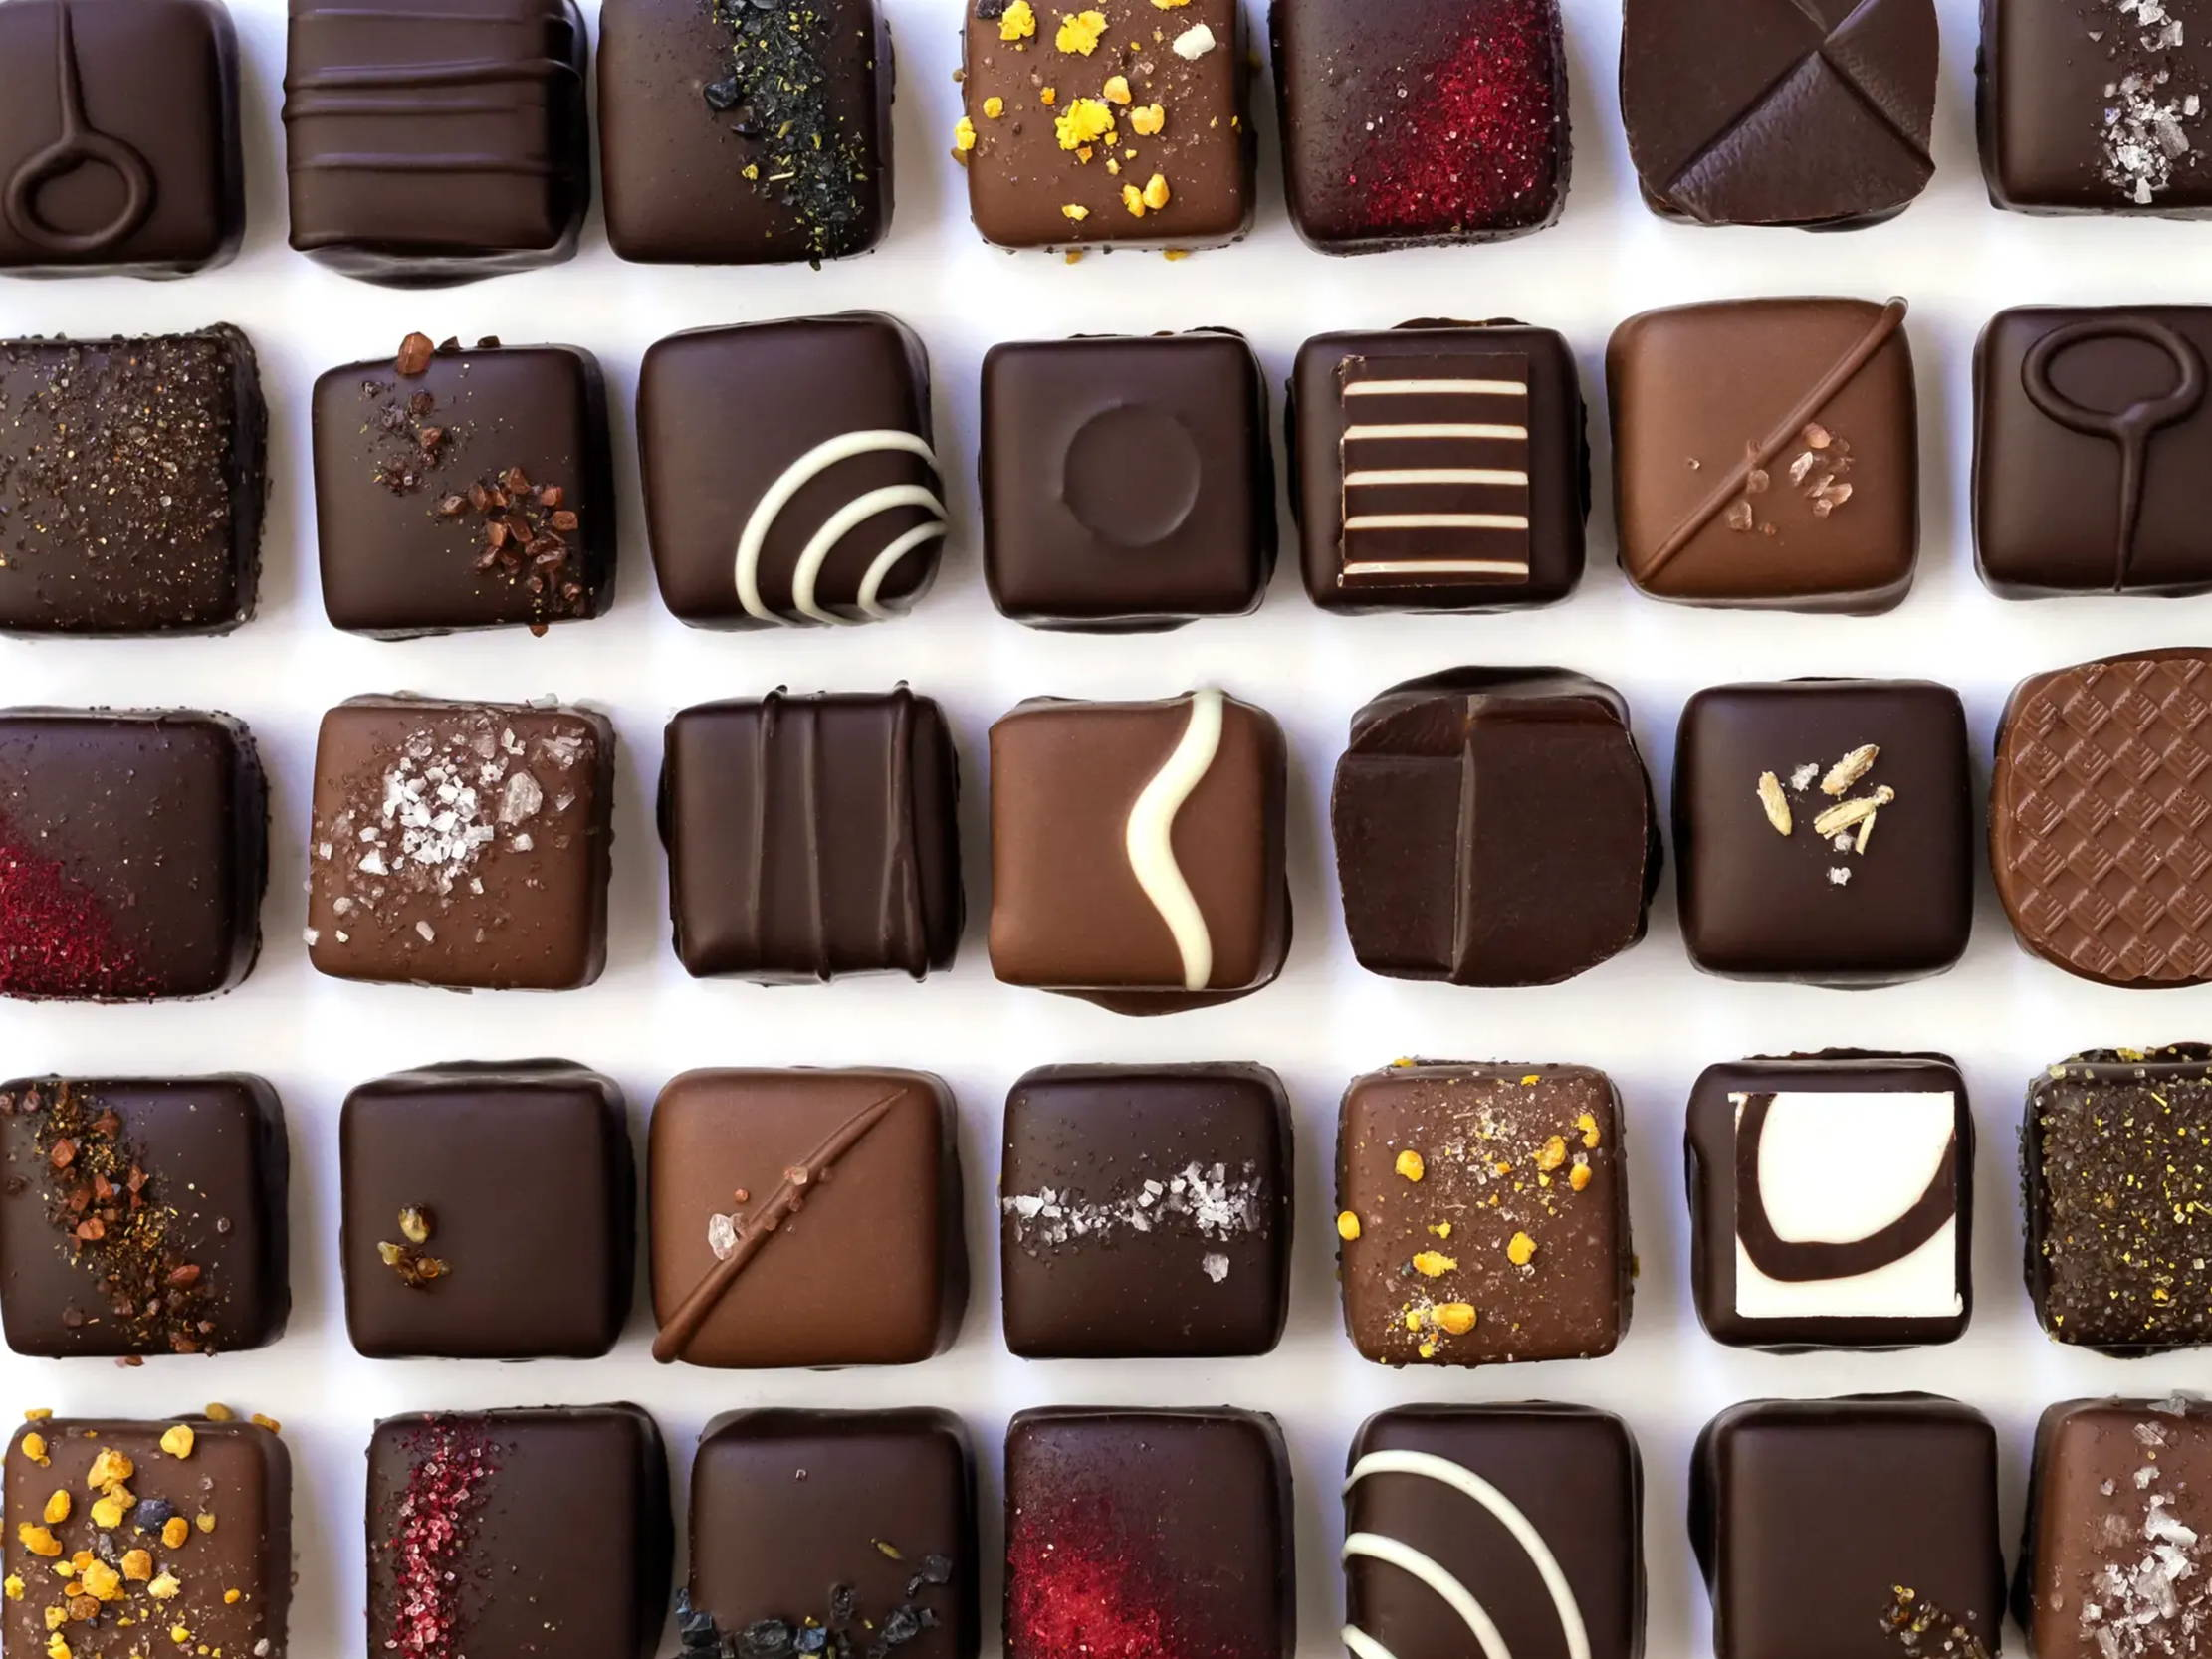 Assortment of delicious handmade confections with specialty decorations perfect for your special event.